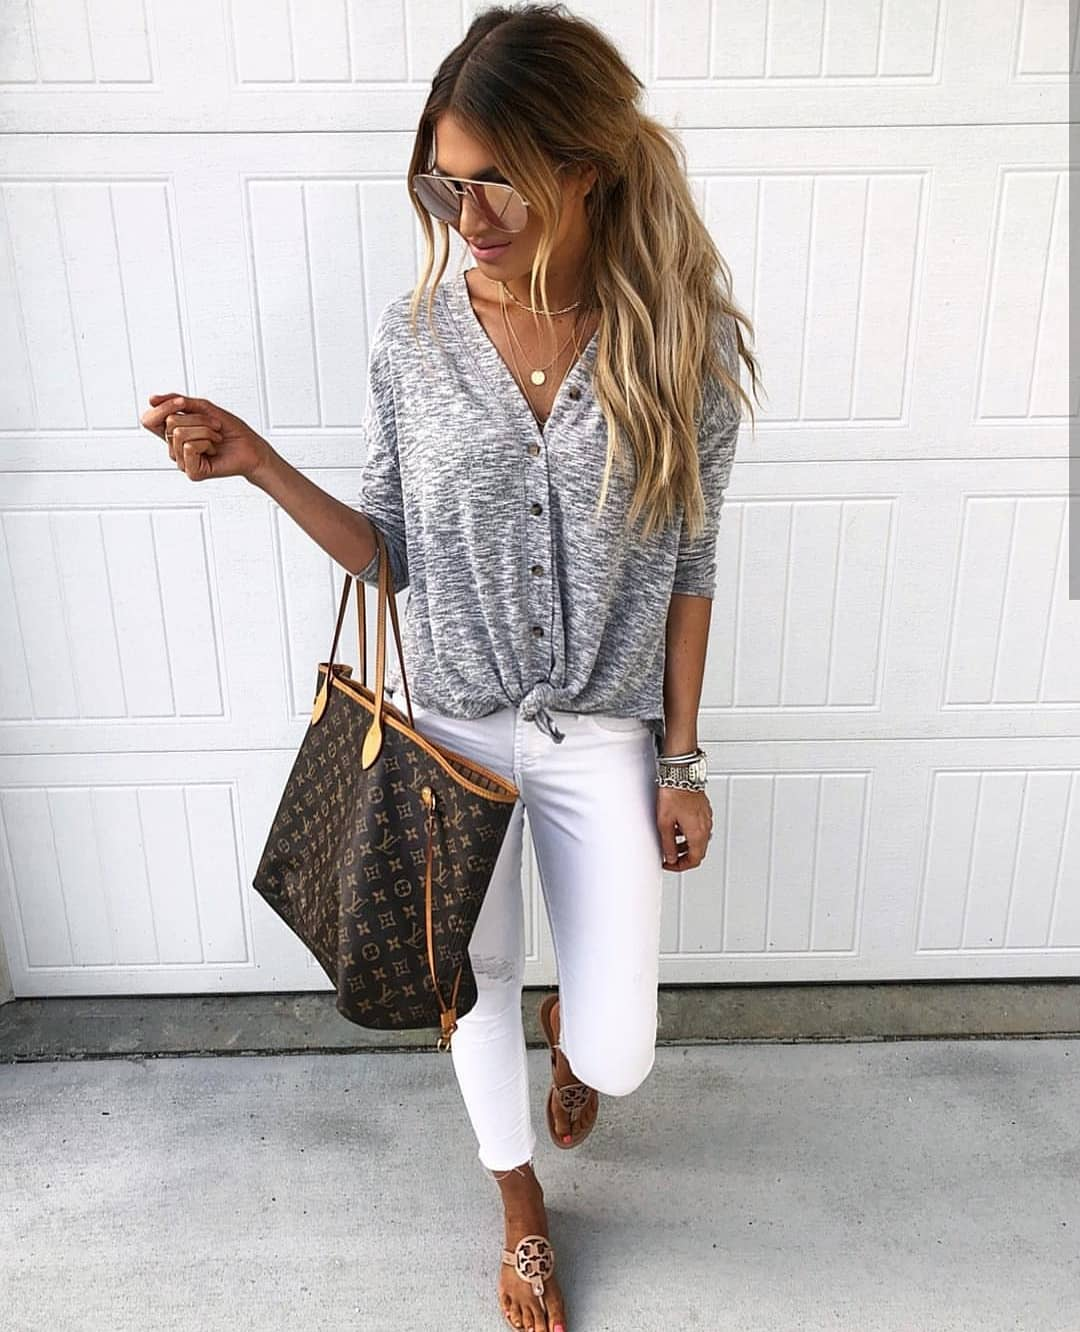 Can You Wear Grey Cardigan With White Jeans This Summer 2020